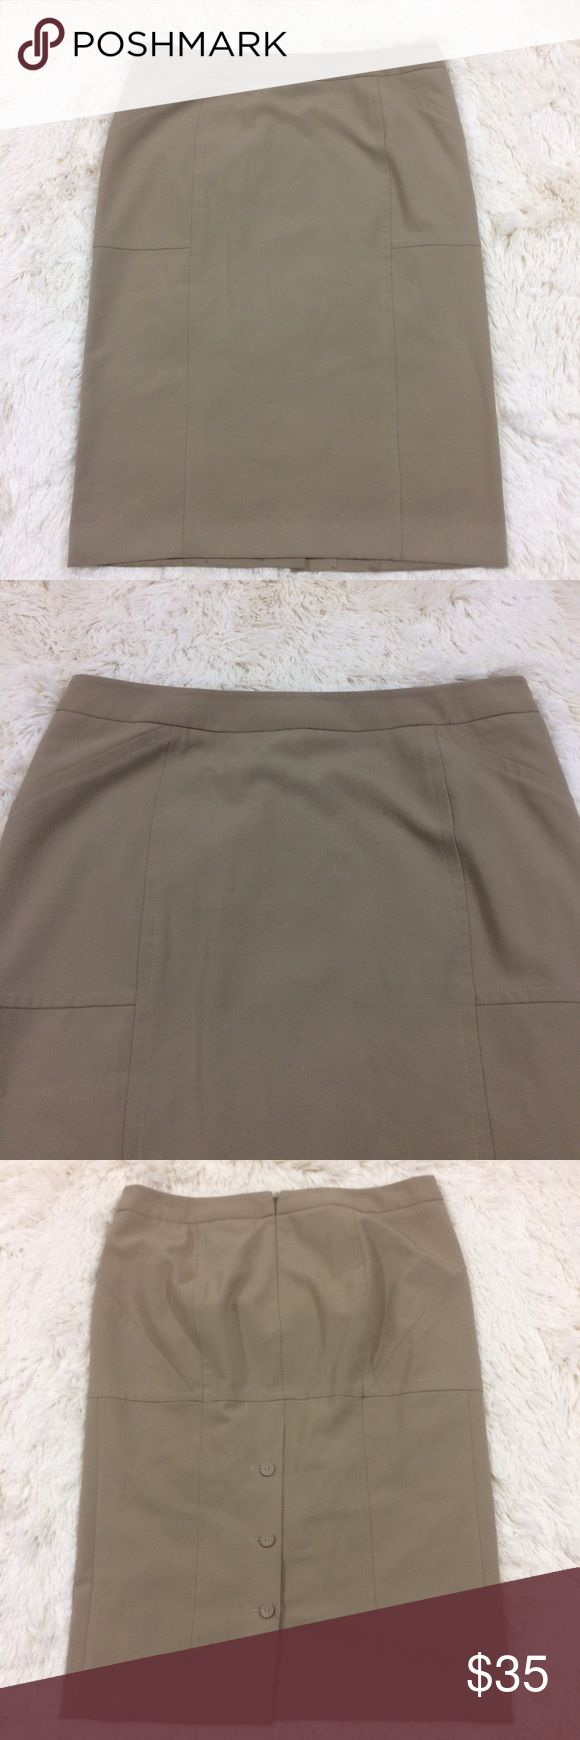 Body by Victoria's Secret tan pencil skirt Tan Body by Victoria's Secret pencil skirt. Three button slit in back. This is a staple for any woman's wardrobe. Classic piece to pair with everything. Victoria's Secret Skirts Pencil